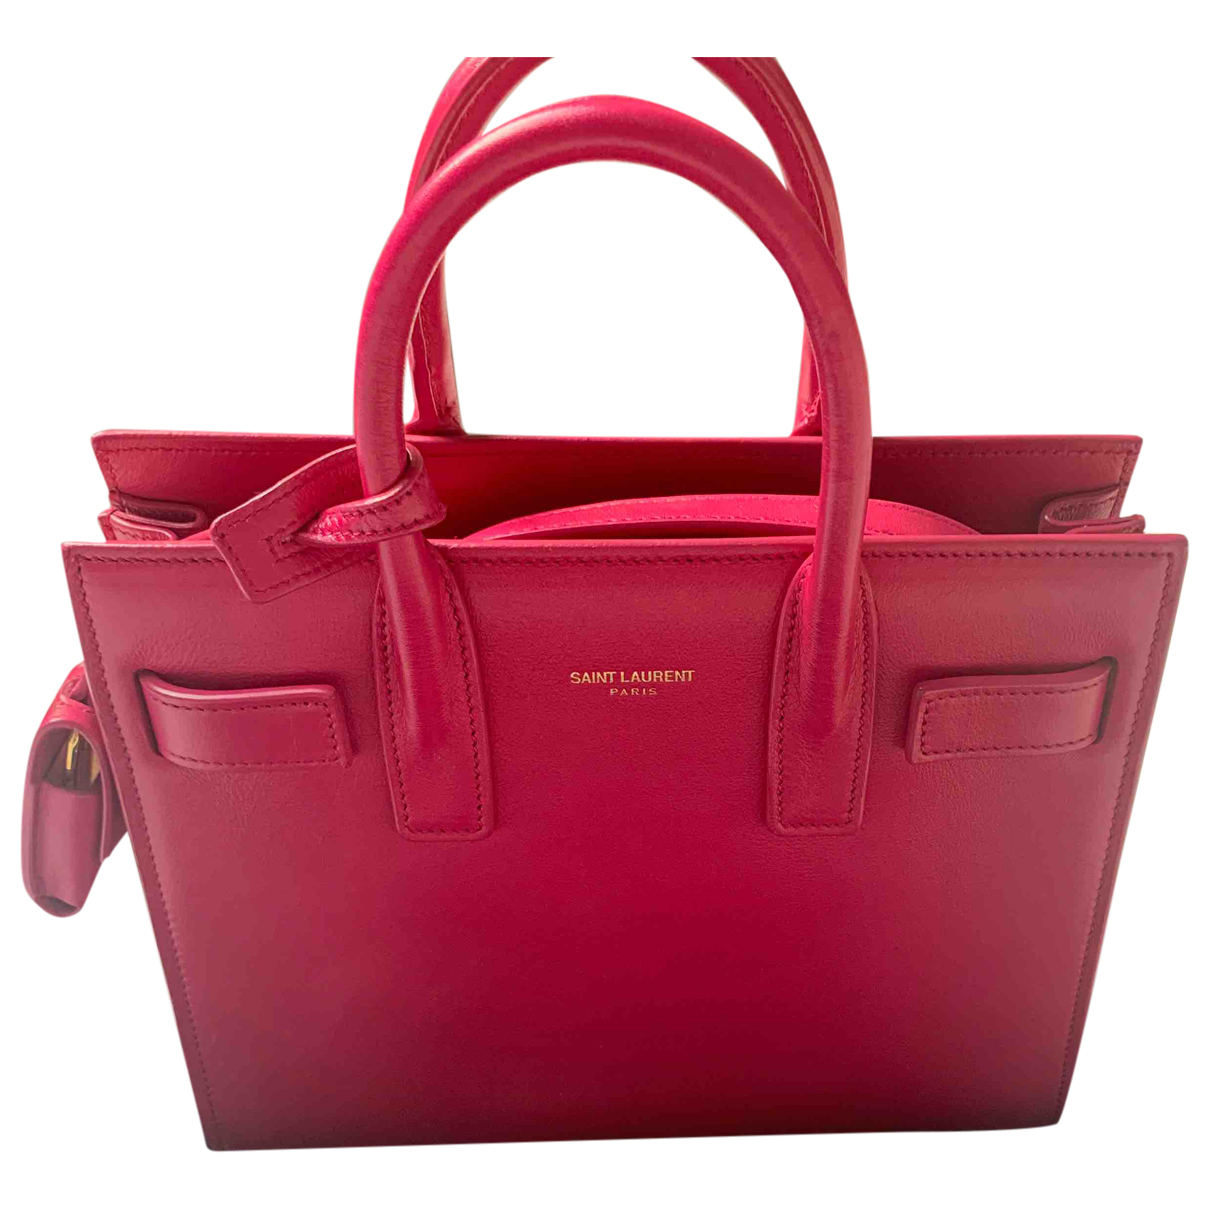 Saint Laurent Sac de Jour Pink Leather handbag for Women \N